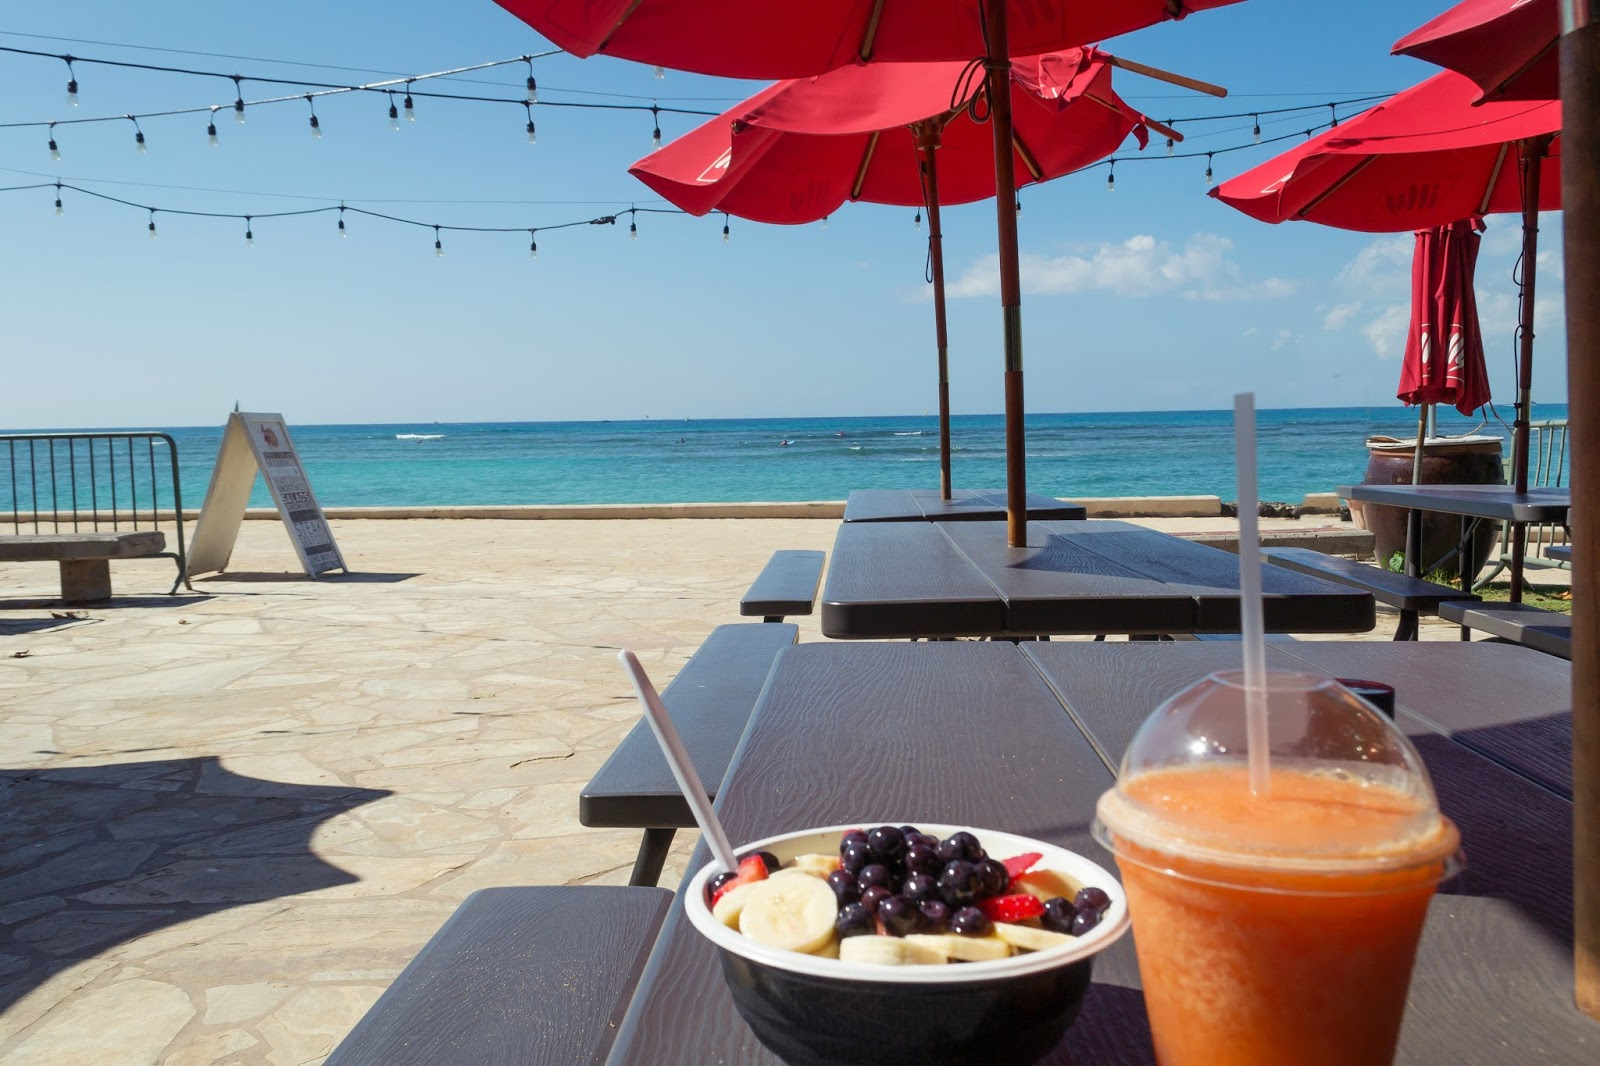 Acai Bowls by Waikiki Beach